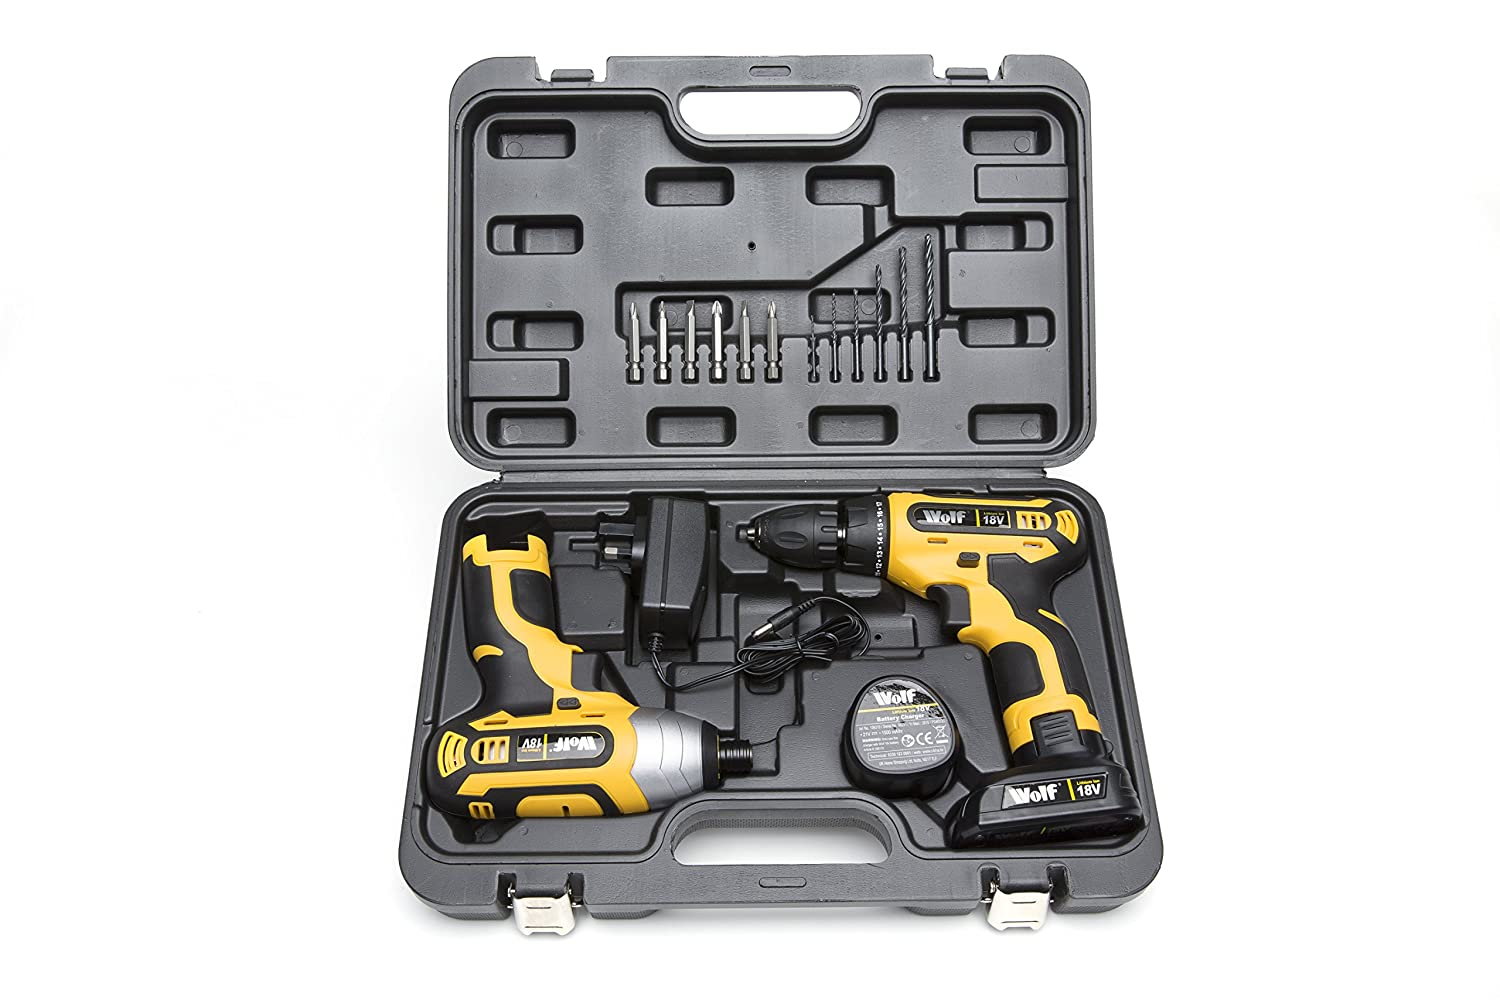 Wolf 18v Lithium Ion Drill Driver & Impact Driver Set Supplied in Case - 2 Year Warranty